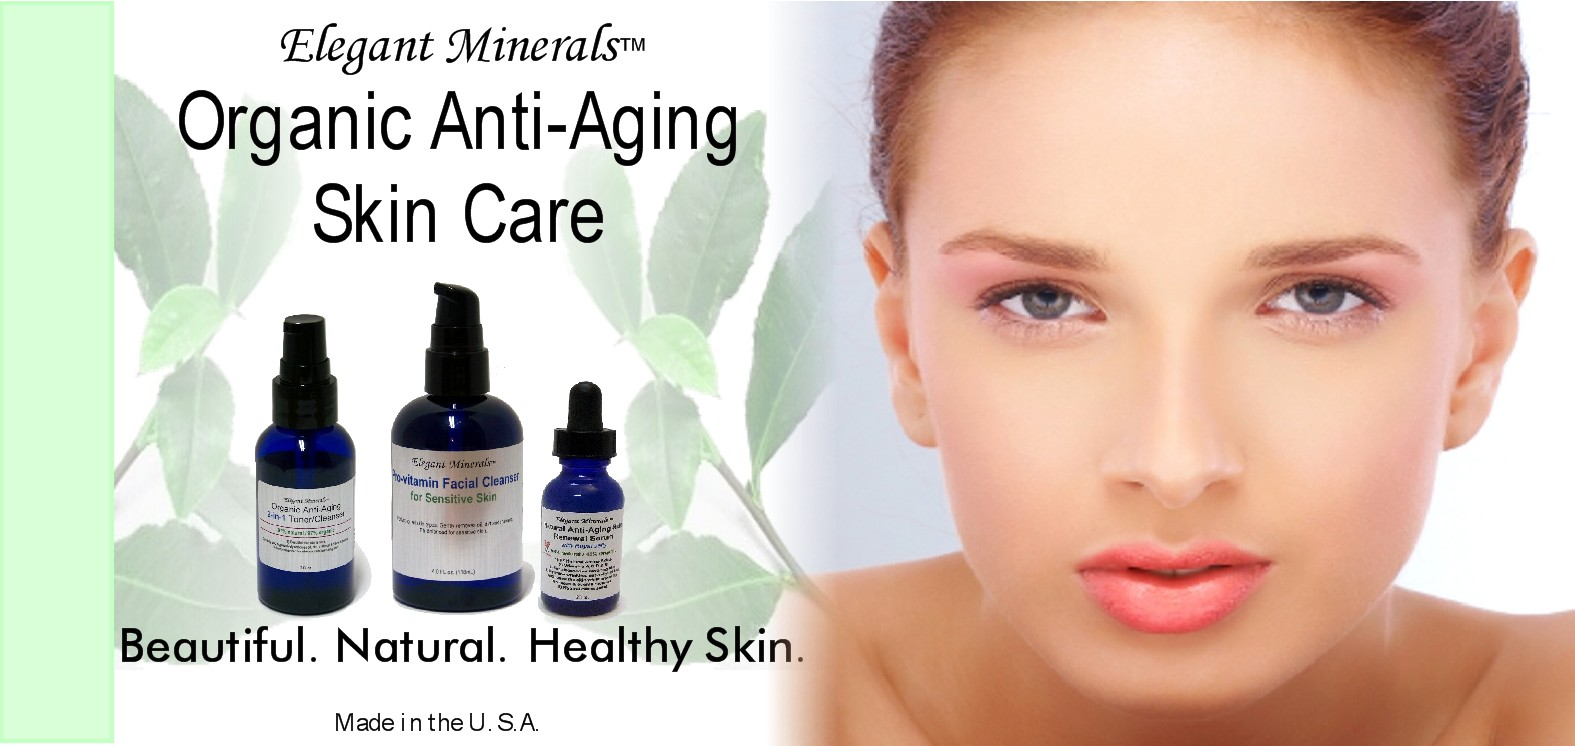 natural-skin-care-elegant-minerals-2011.jpg